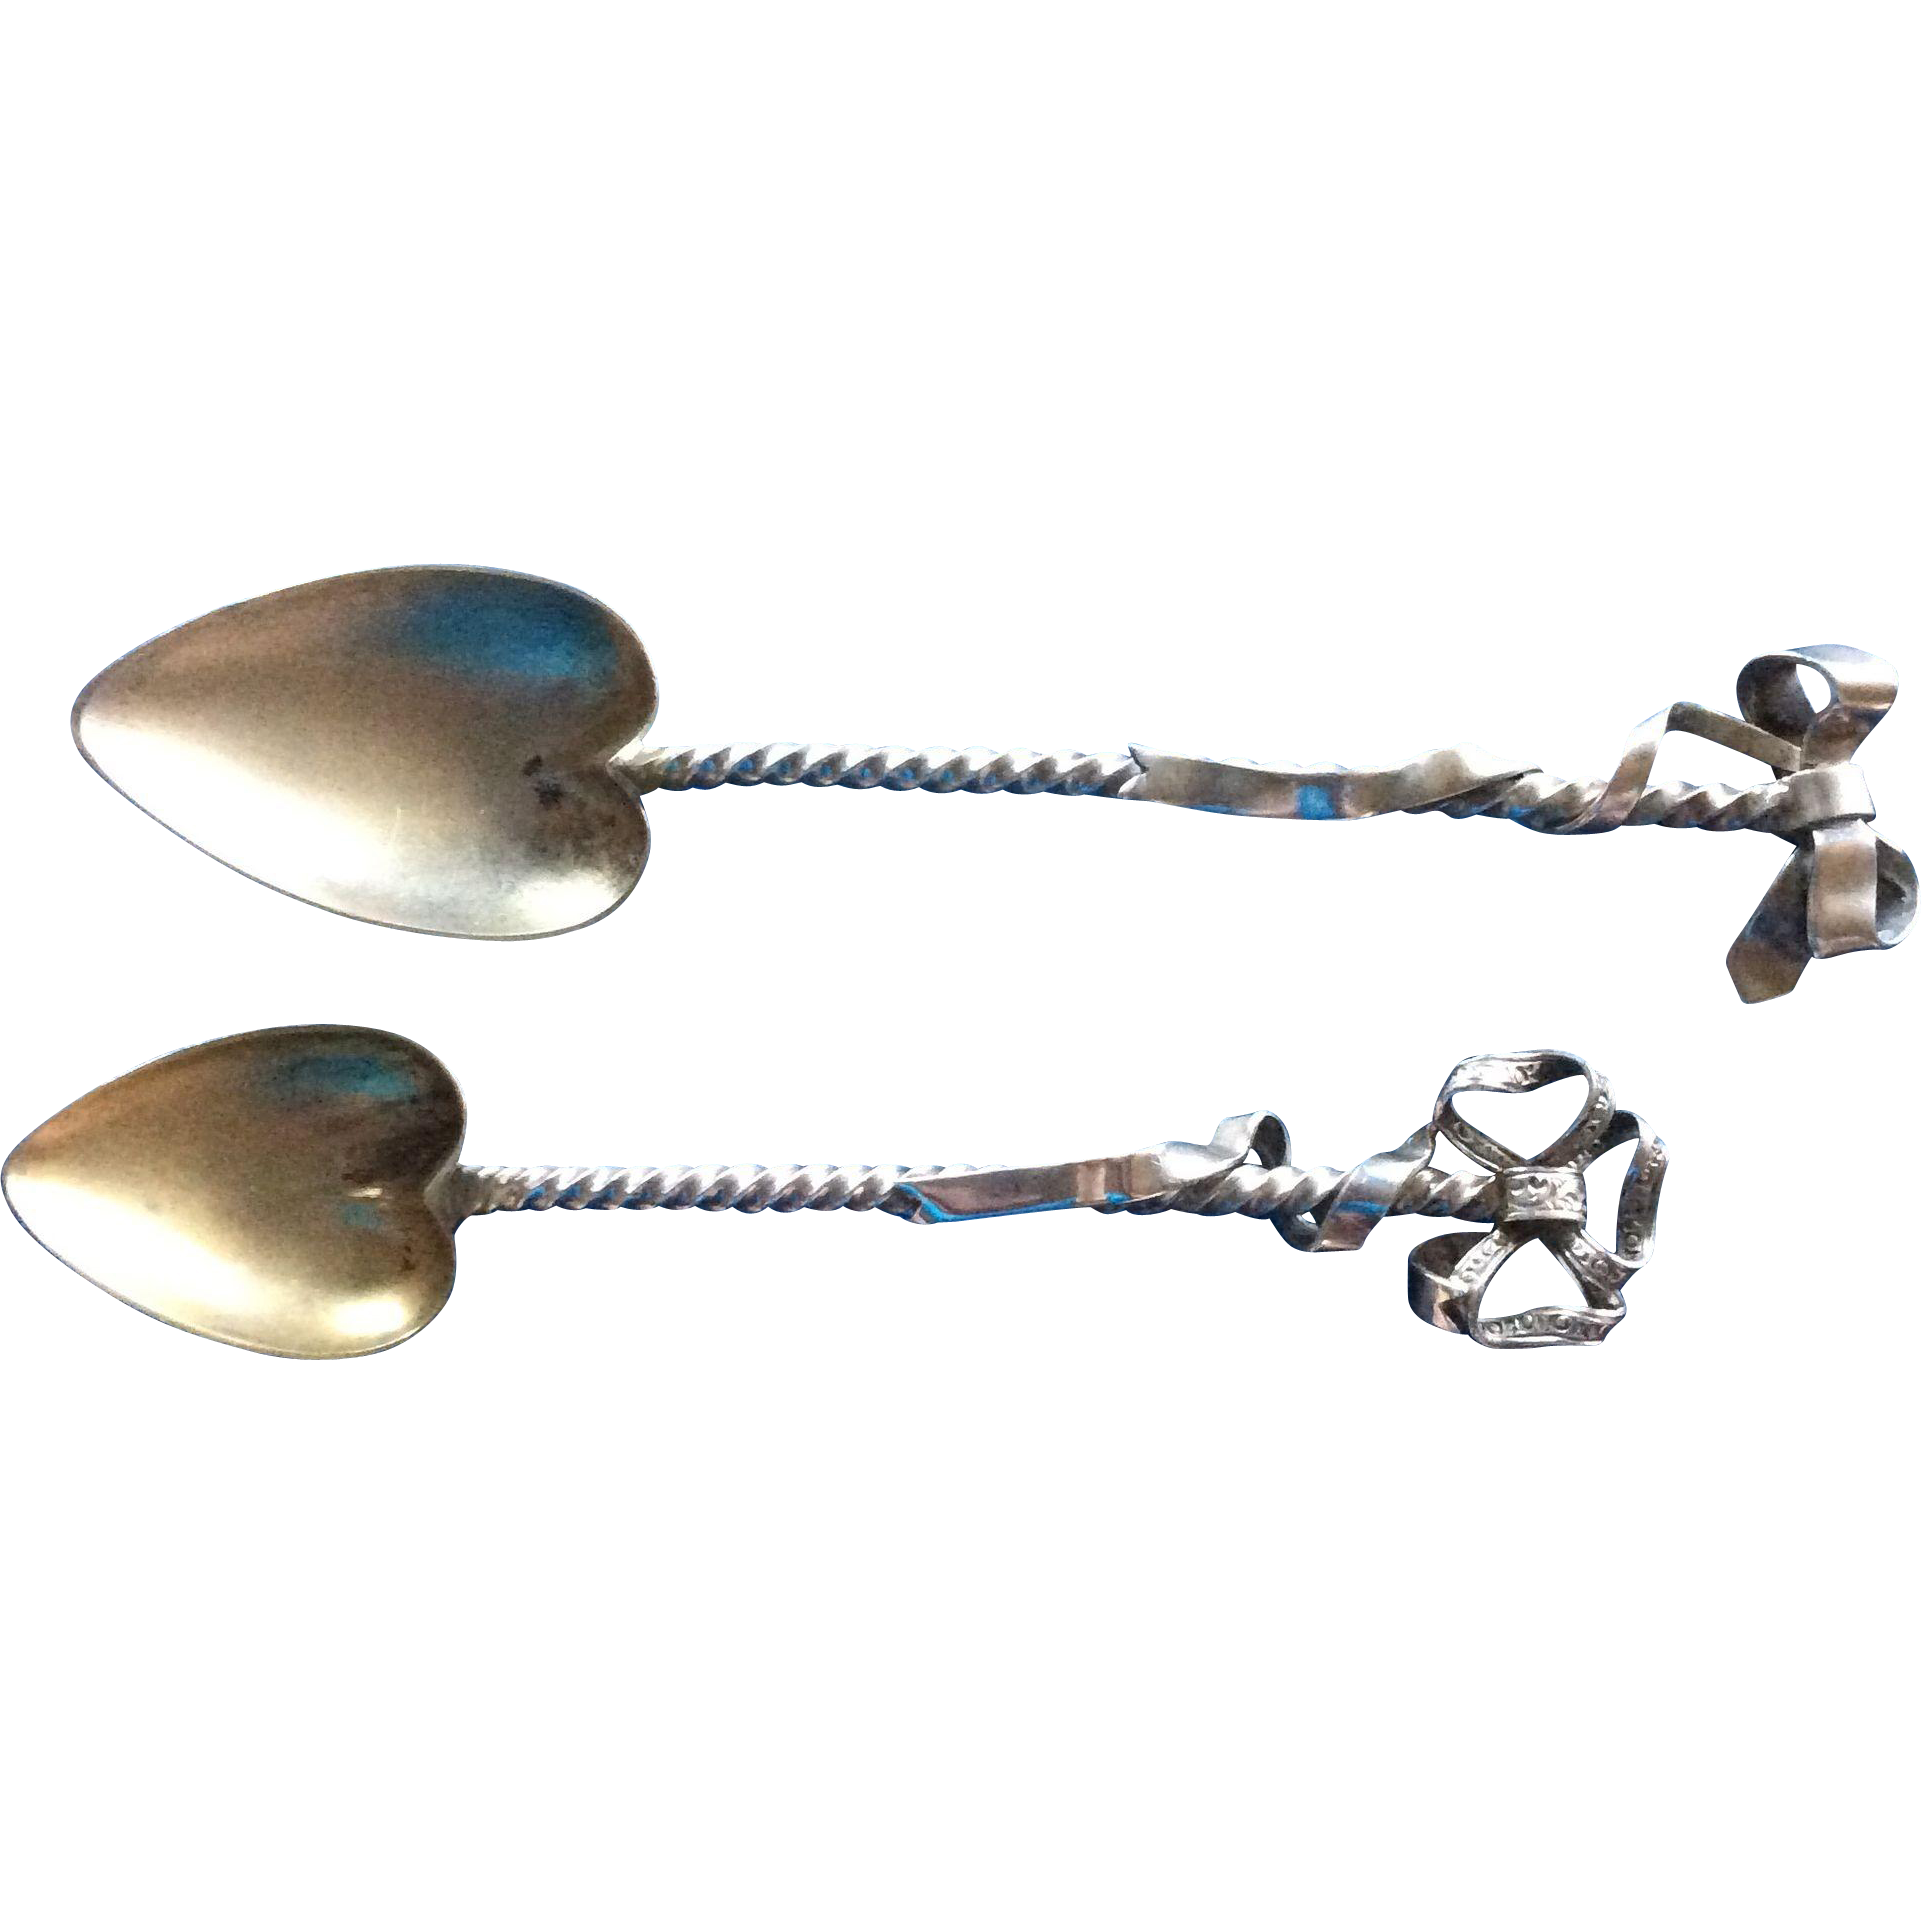 2 Sterling silver Demitasse Coffee spoons with Bows and Heart Shaped Bowls